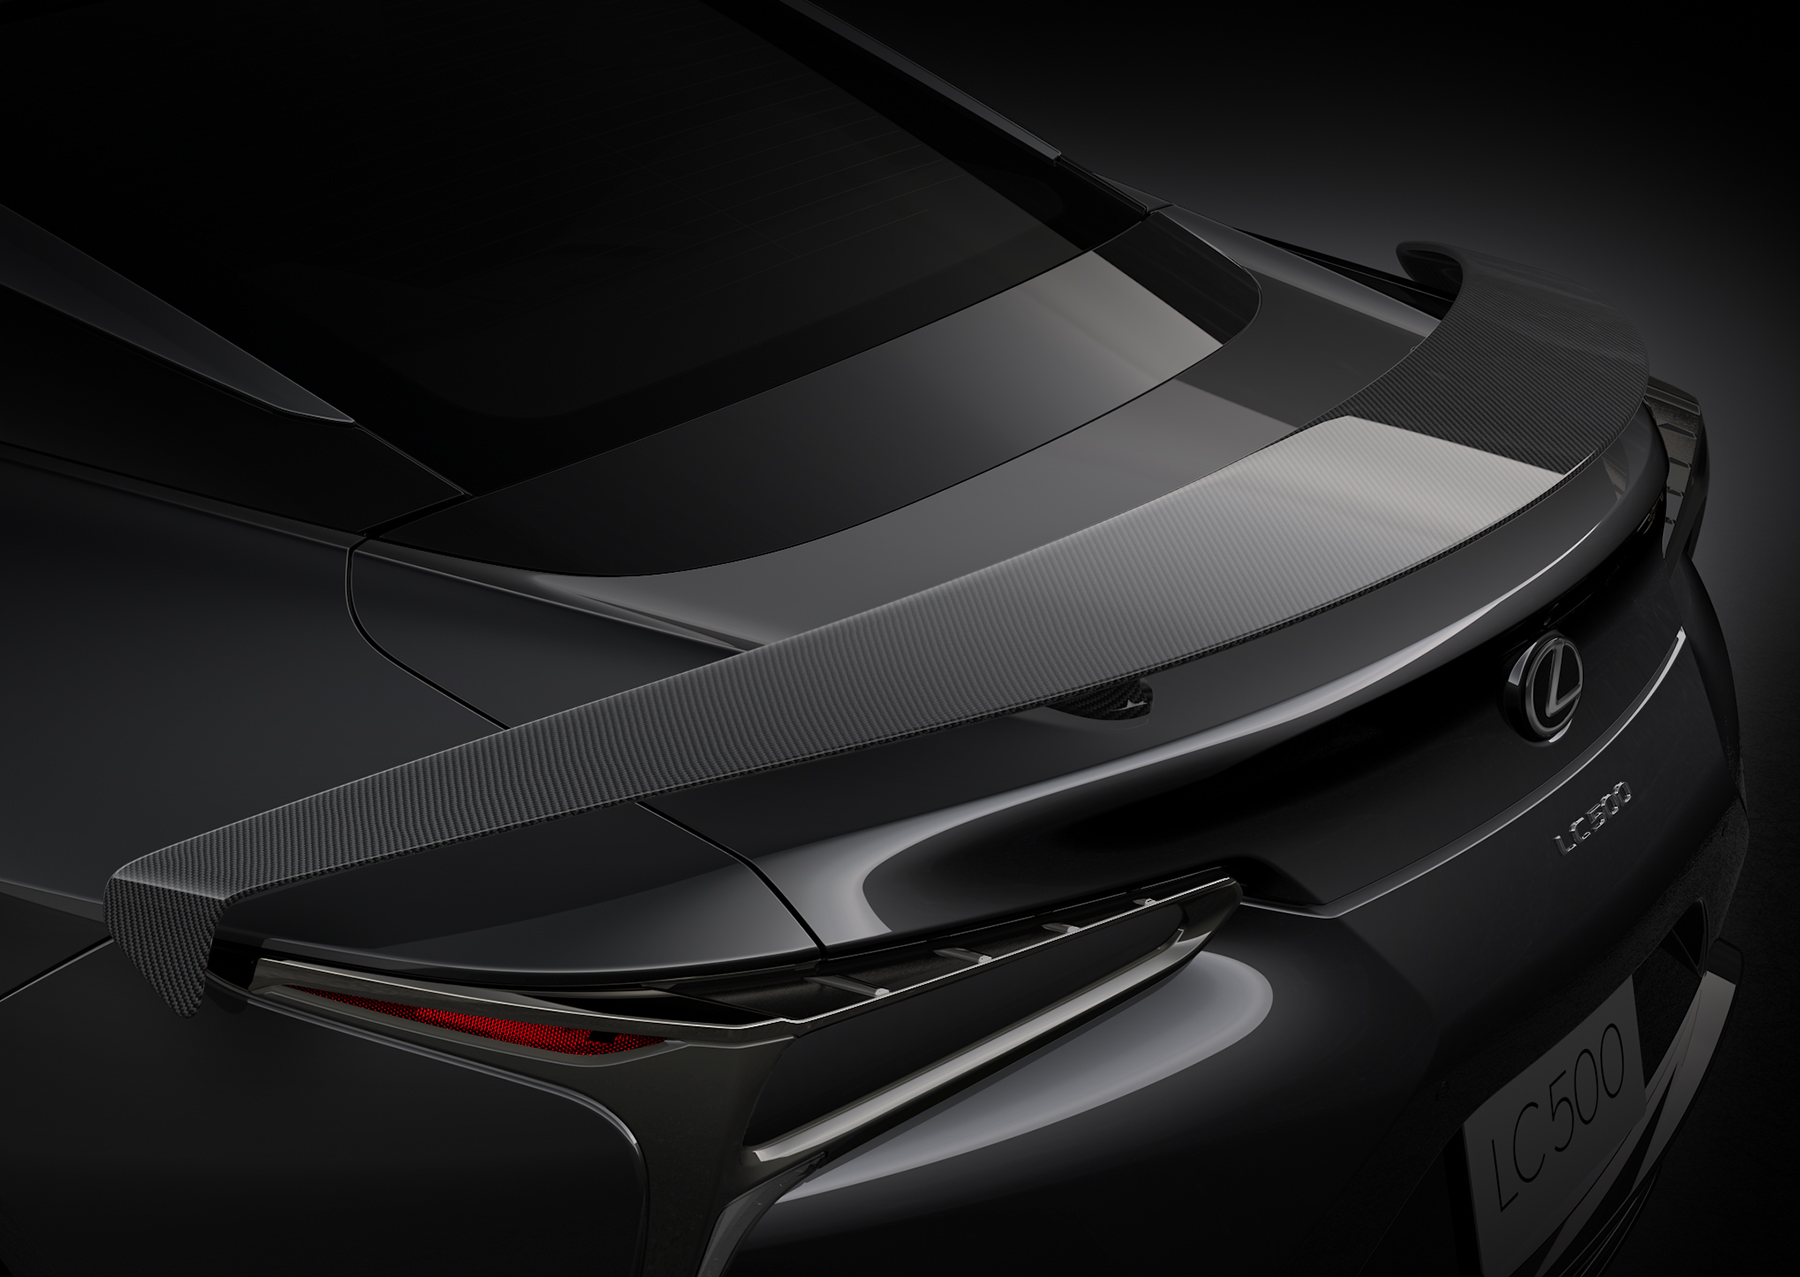 2021 Lexus LC 500 Inspiration Series wing detail close up